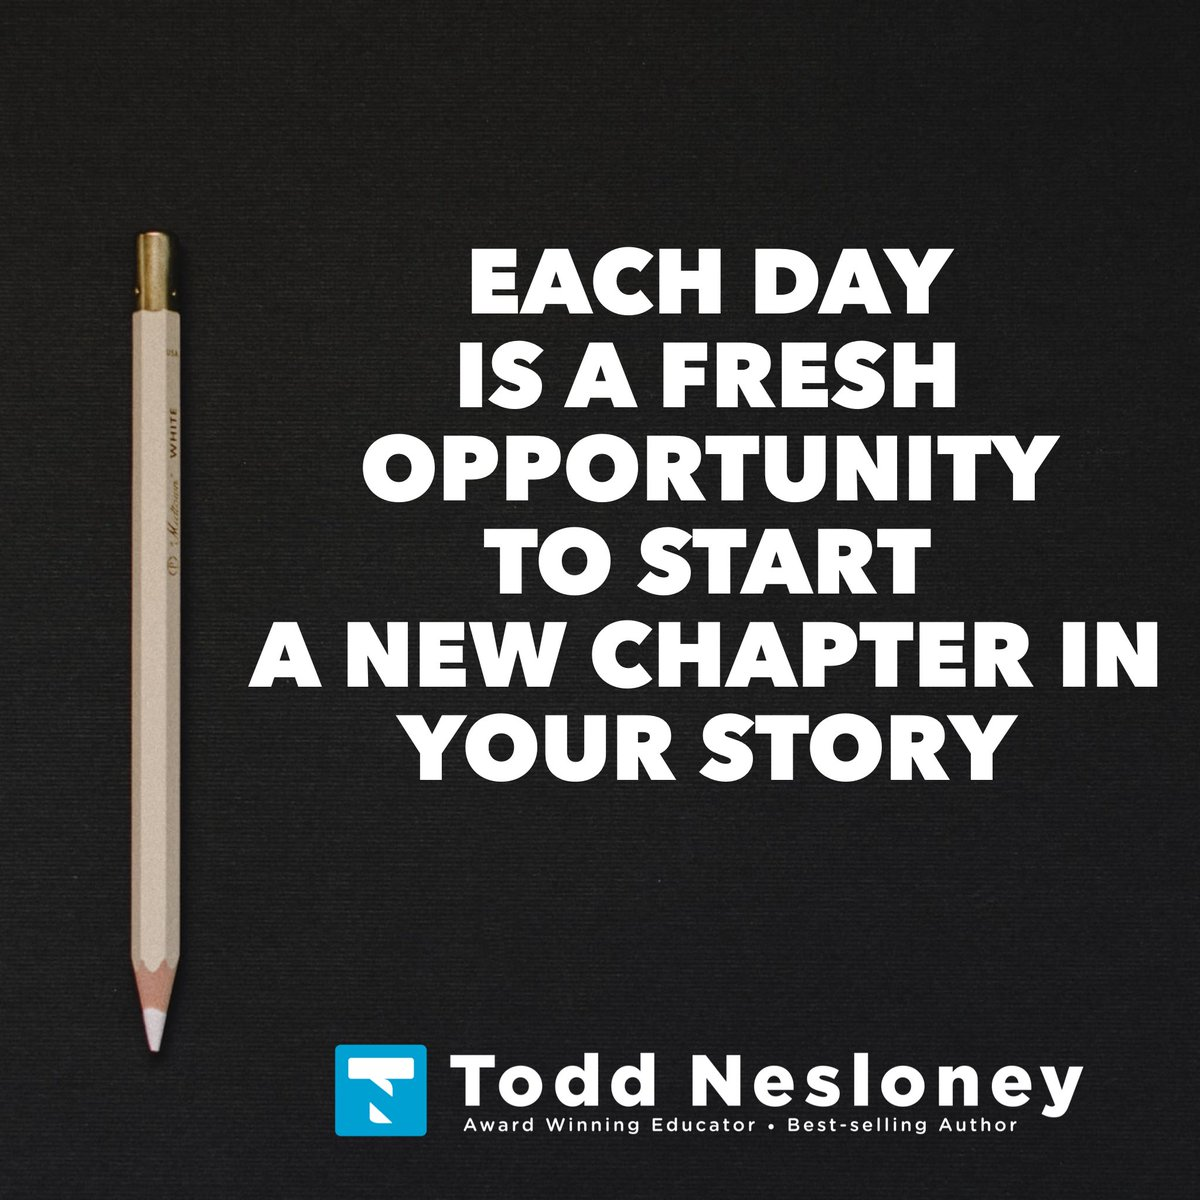 Each day is a fresh opportunity to start a new chapter in your story. #TellYourStory